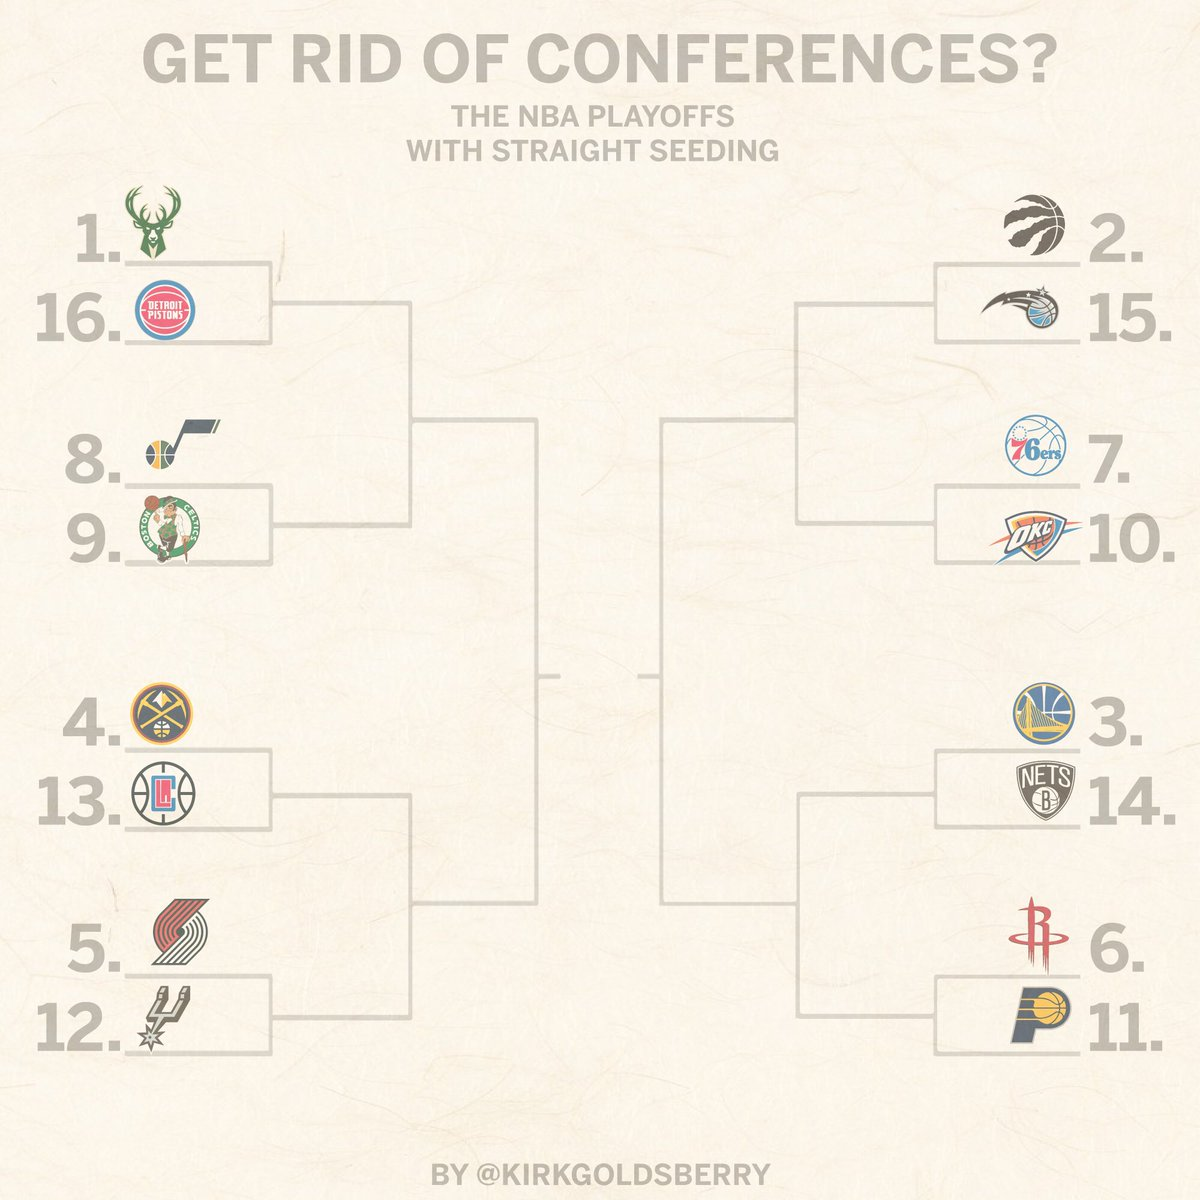 Would these playoffs be better? Yes or yes?